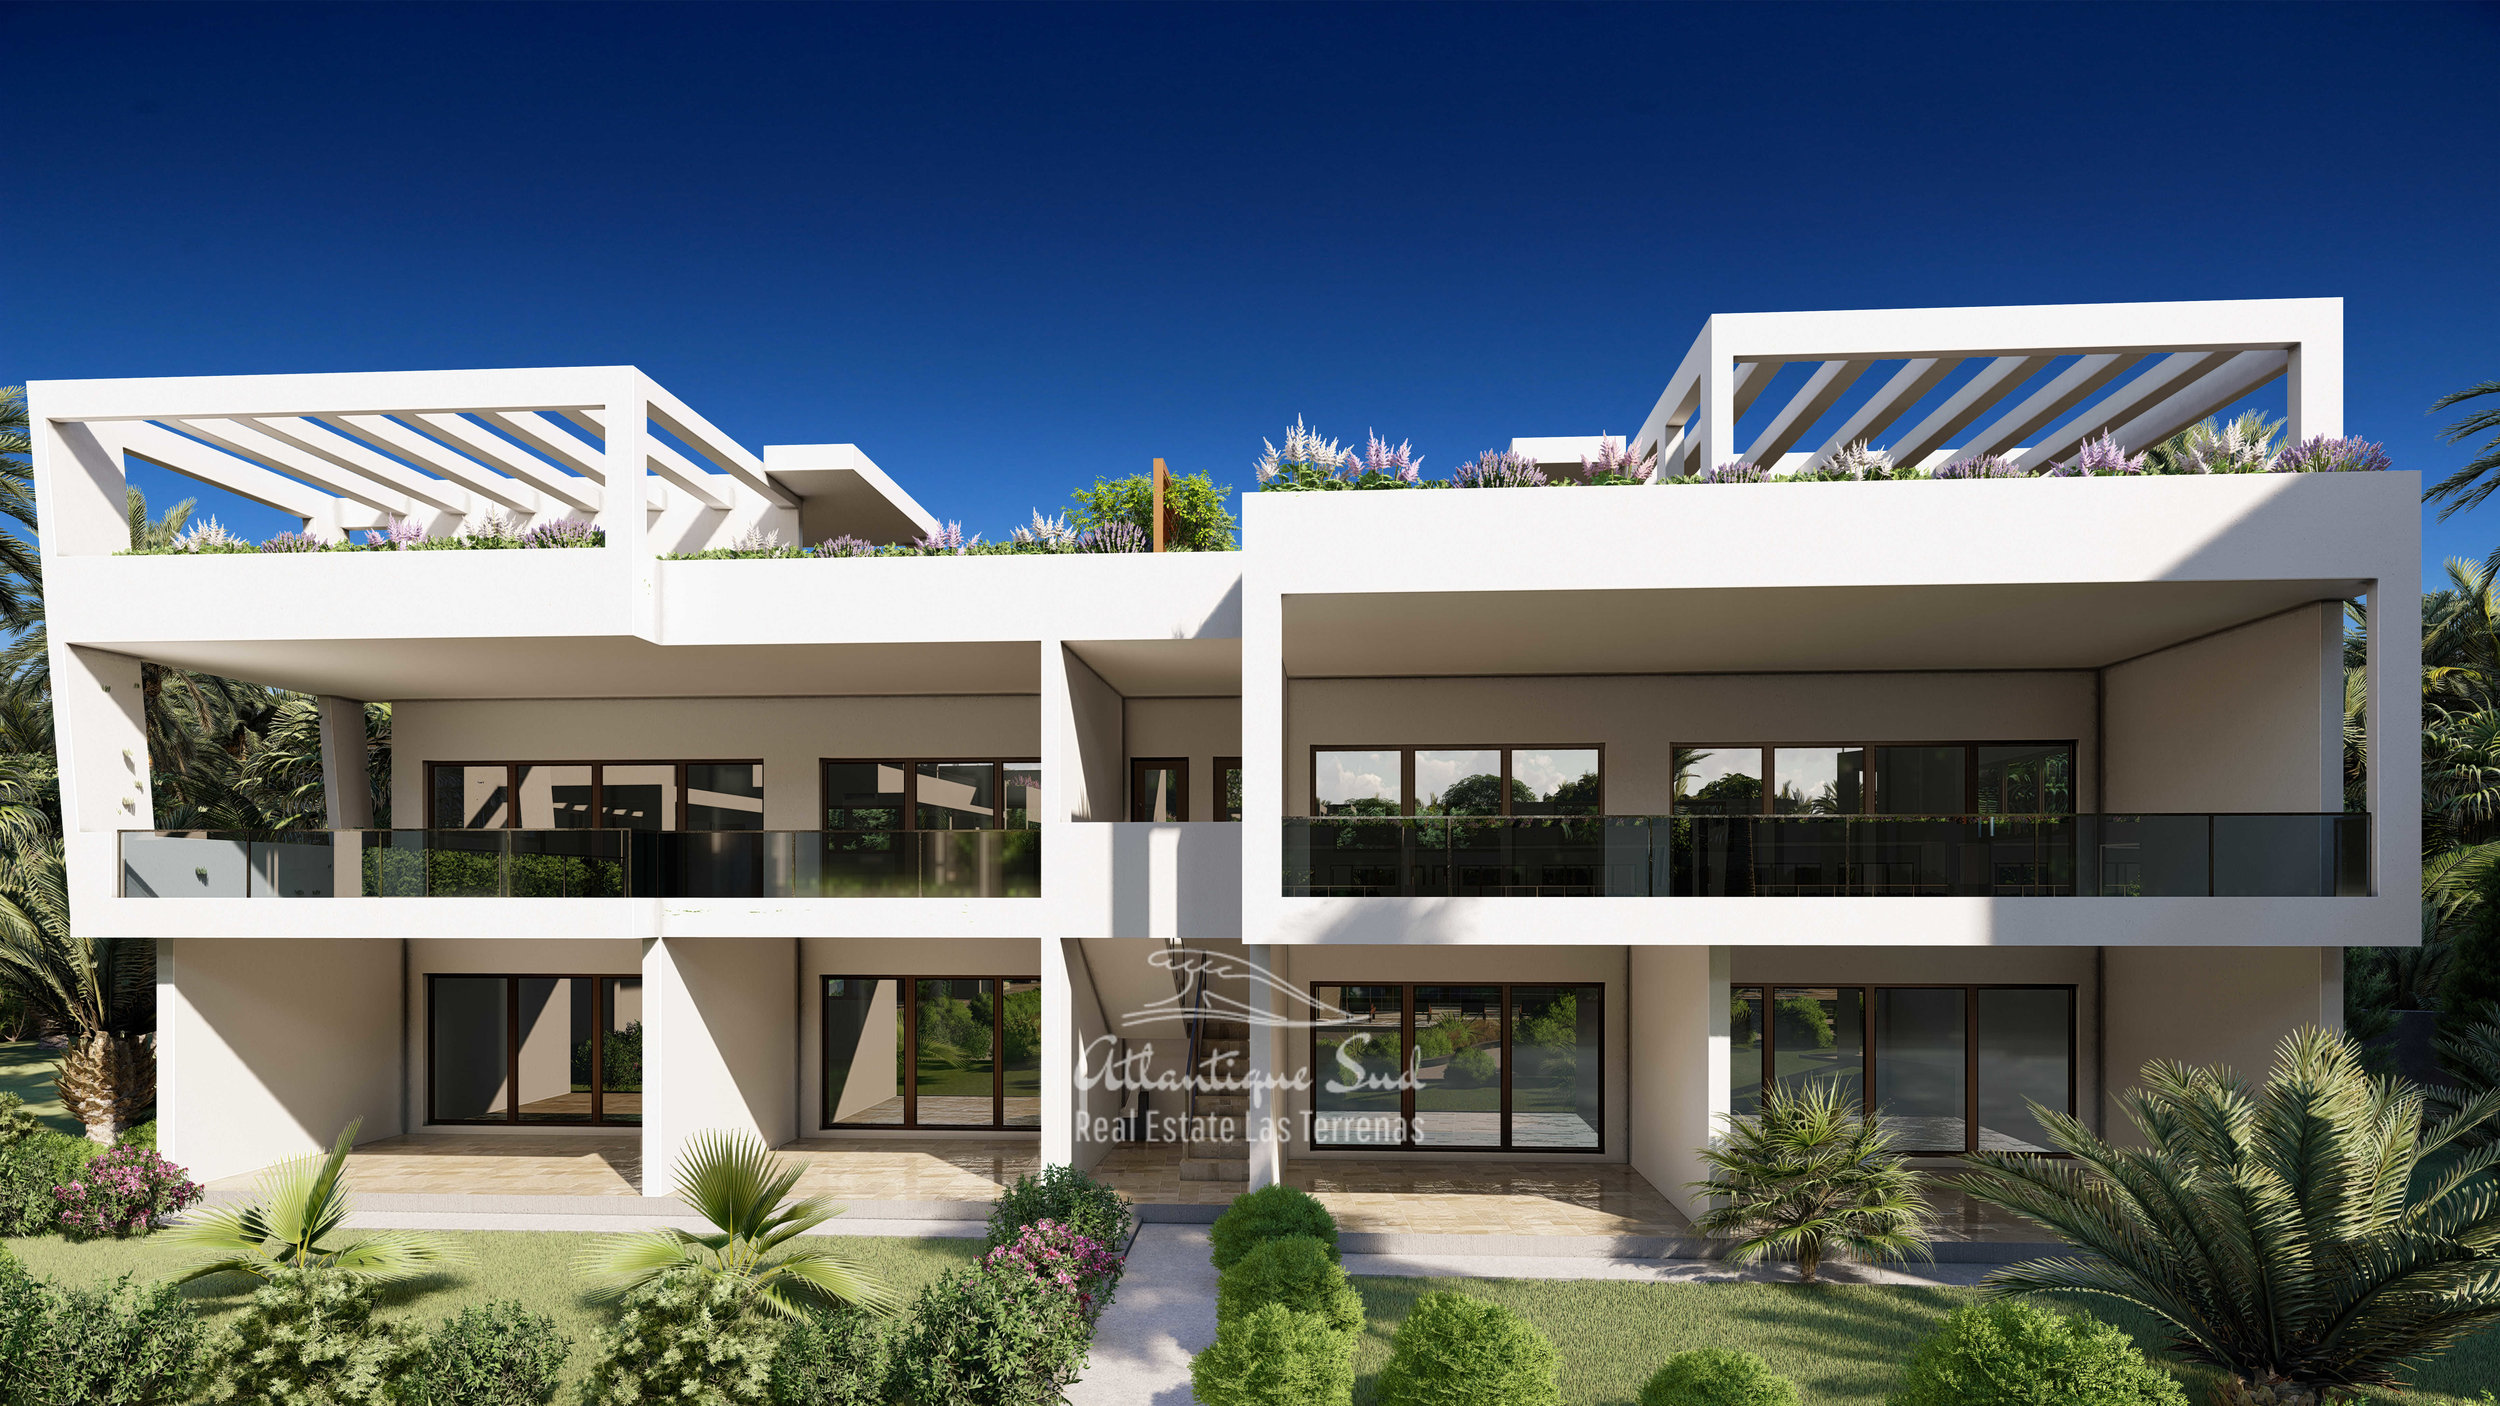 Development of modern condos steps from the beach Real Estate Las Terrenas Atlantique Sud Dominican Republic5.jpg